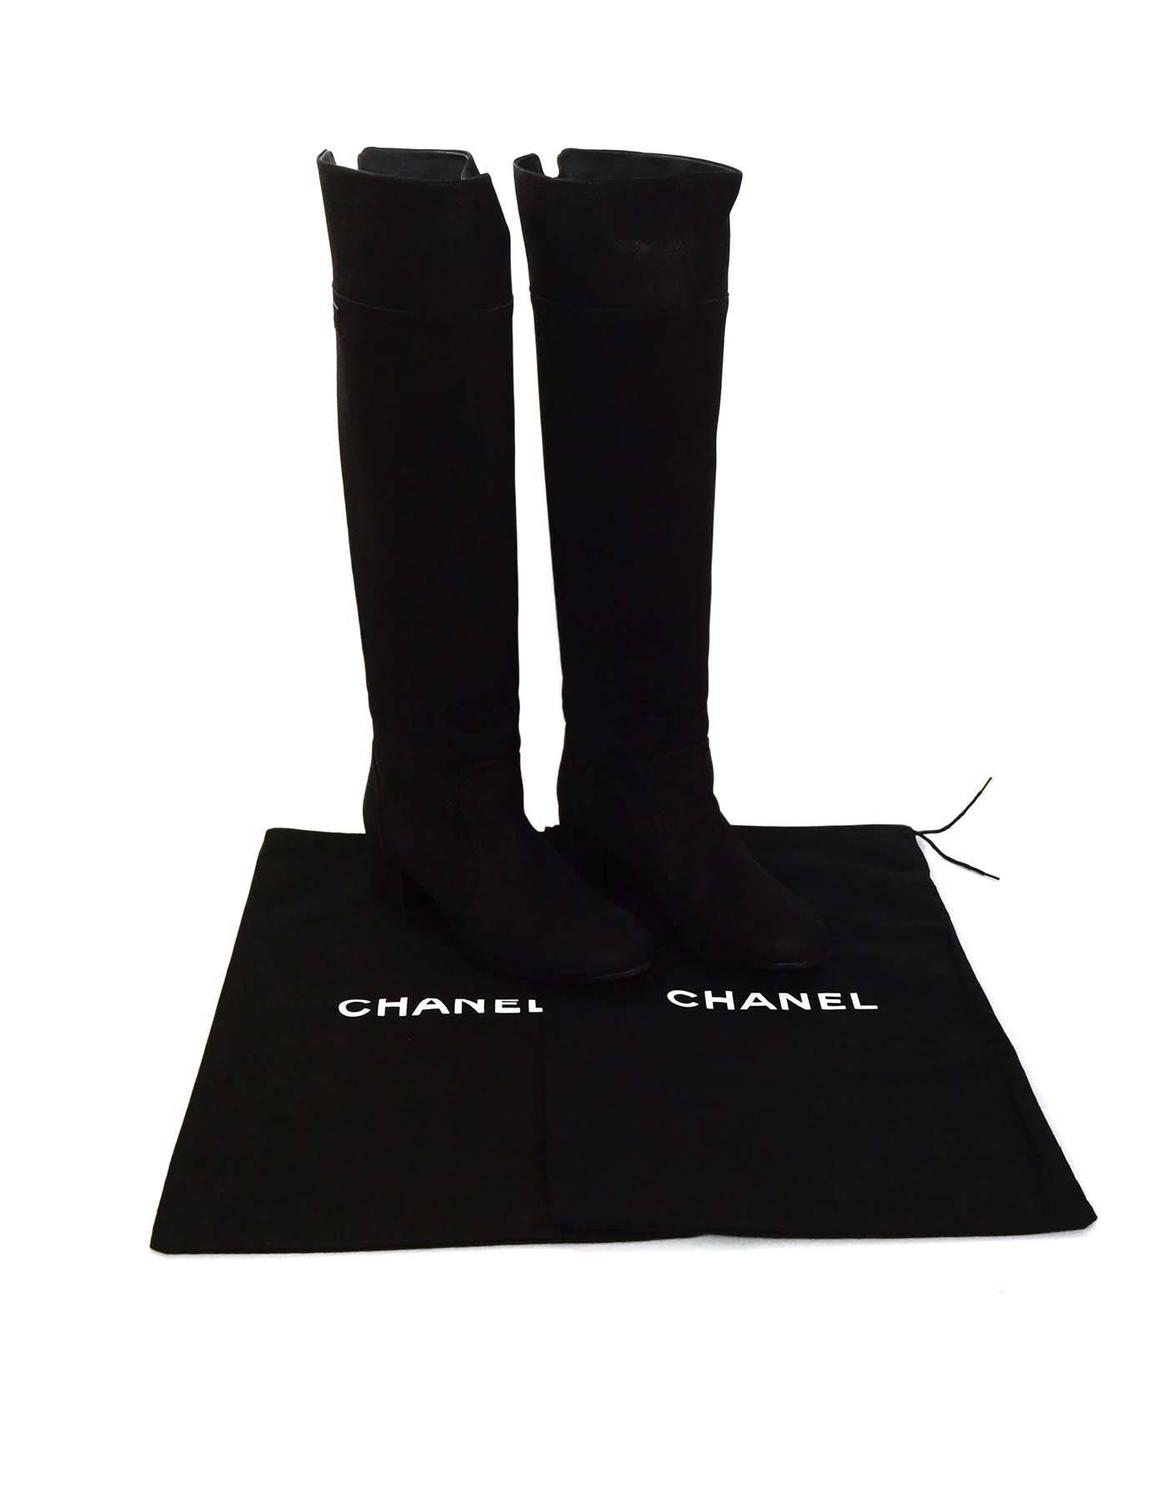 chanel black sueded leather knee high boots sz 42 at 1stdibs